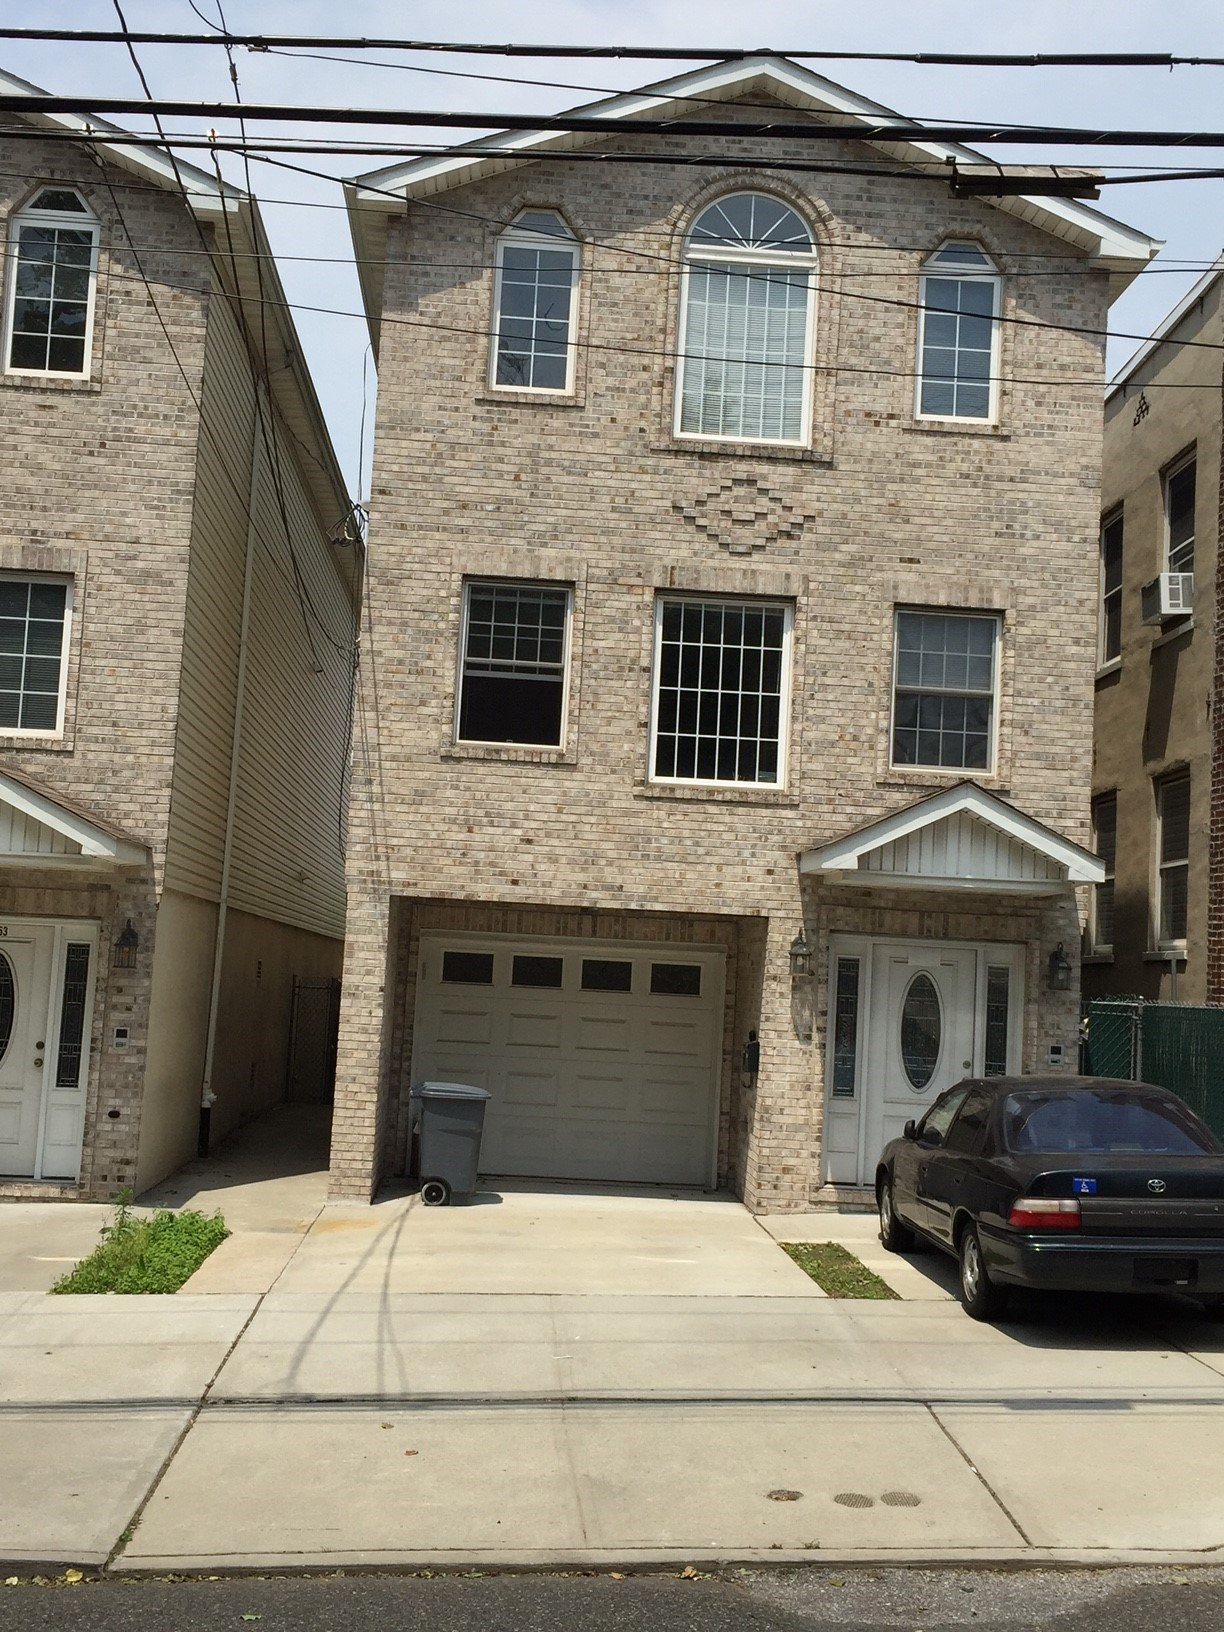 3 bedroom apartment to rent in new jersey area 3 bedroom